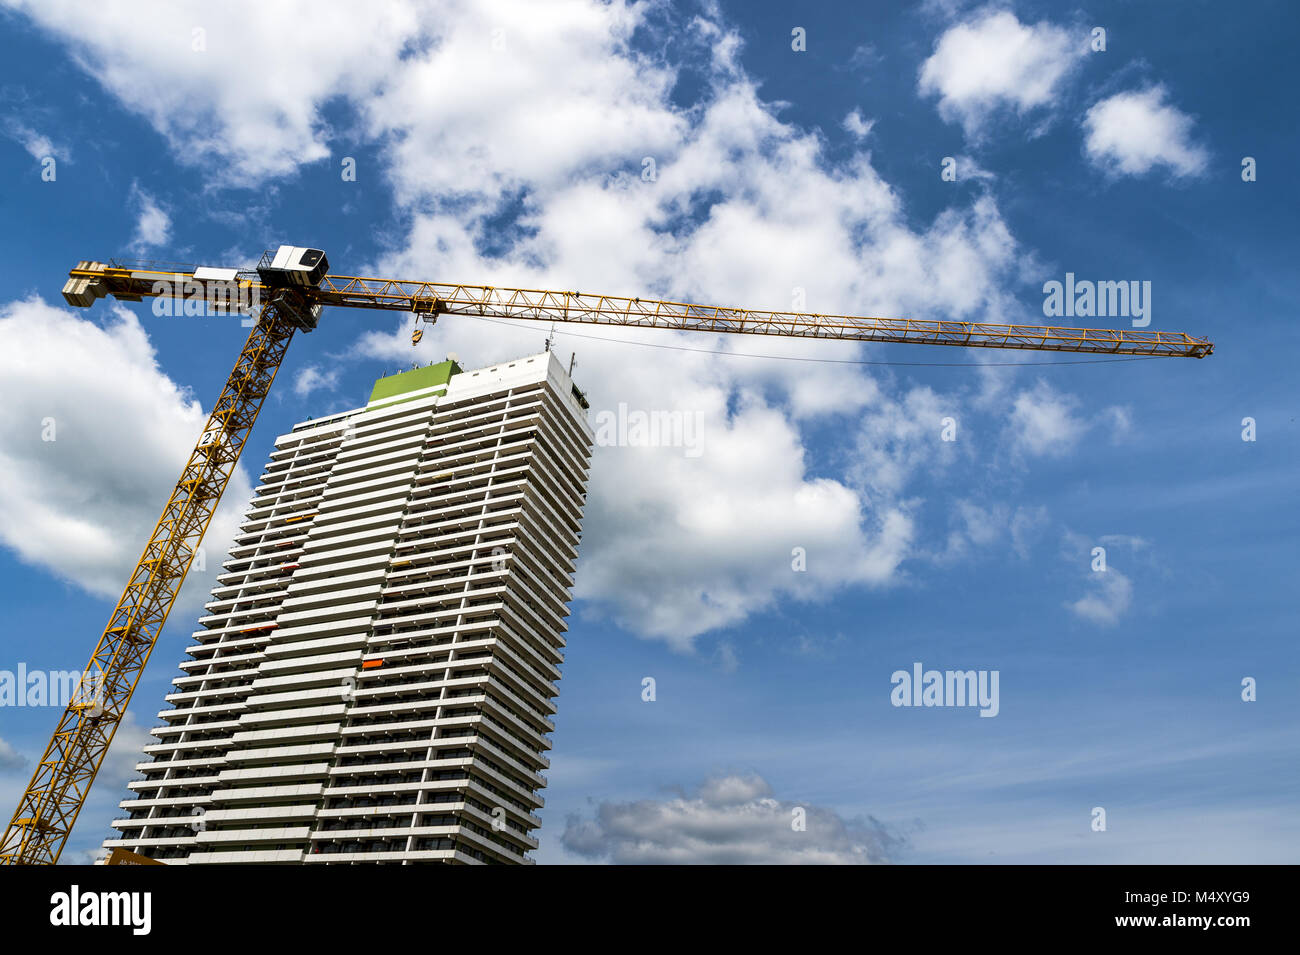 A crane and a high-rise against a blue sky - Stock Image